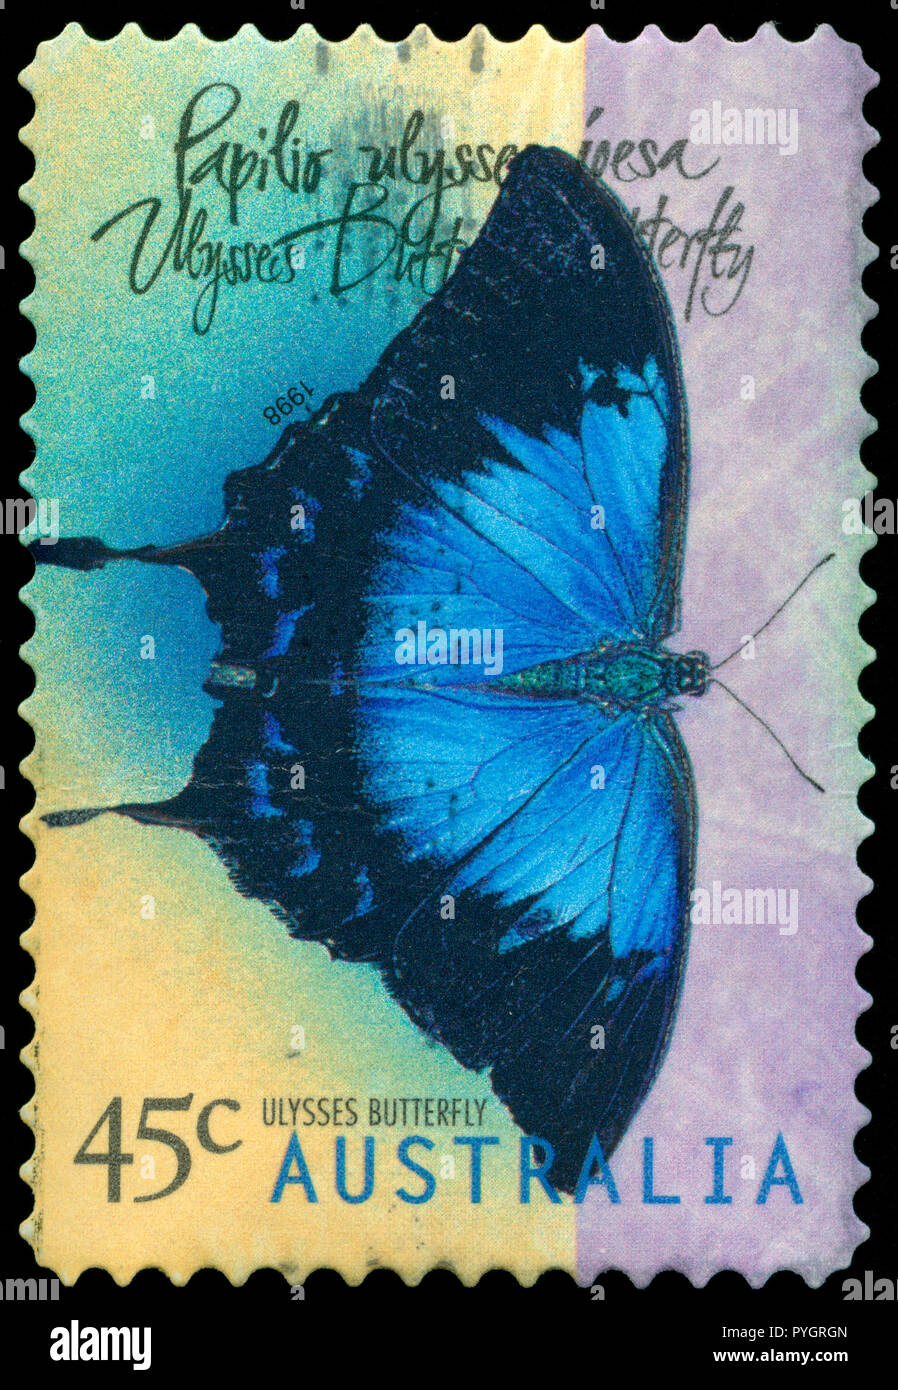 Postmarked stamp from Australia in the Butterflies (1998-1999) series issued in 1998 - Stock Image